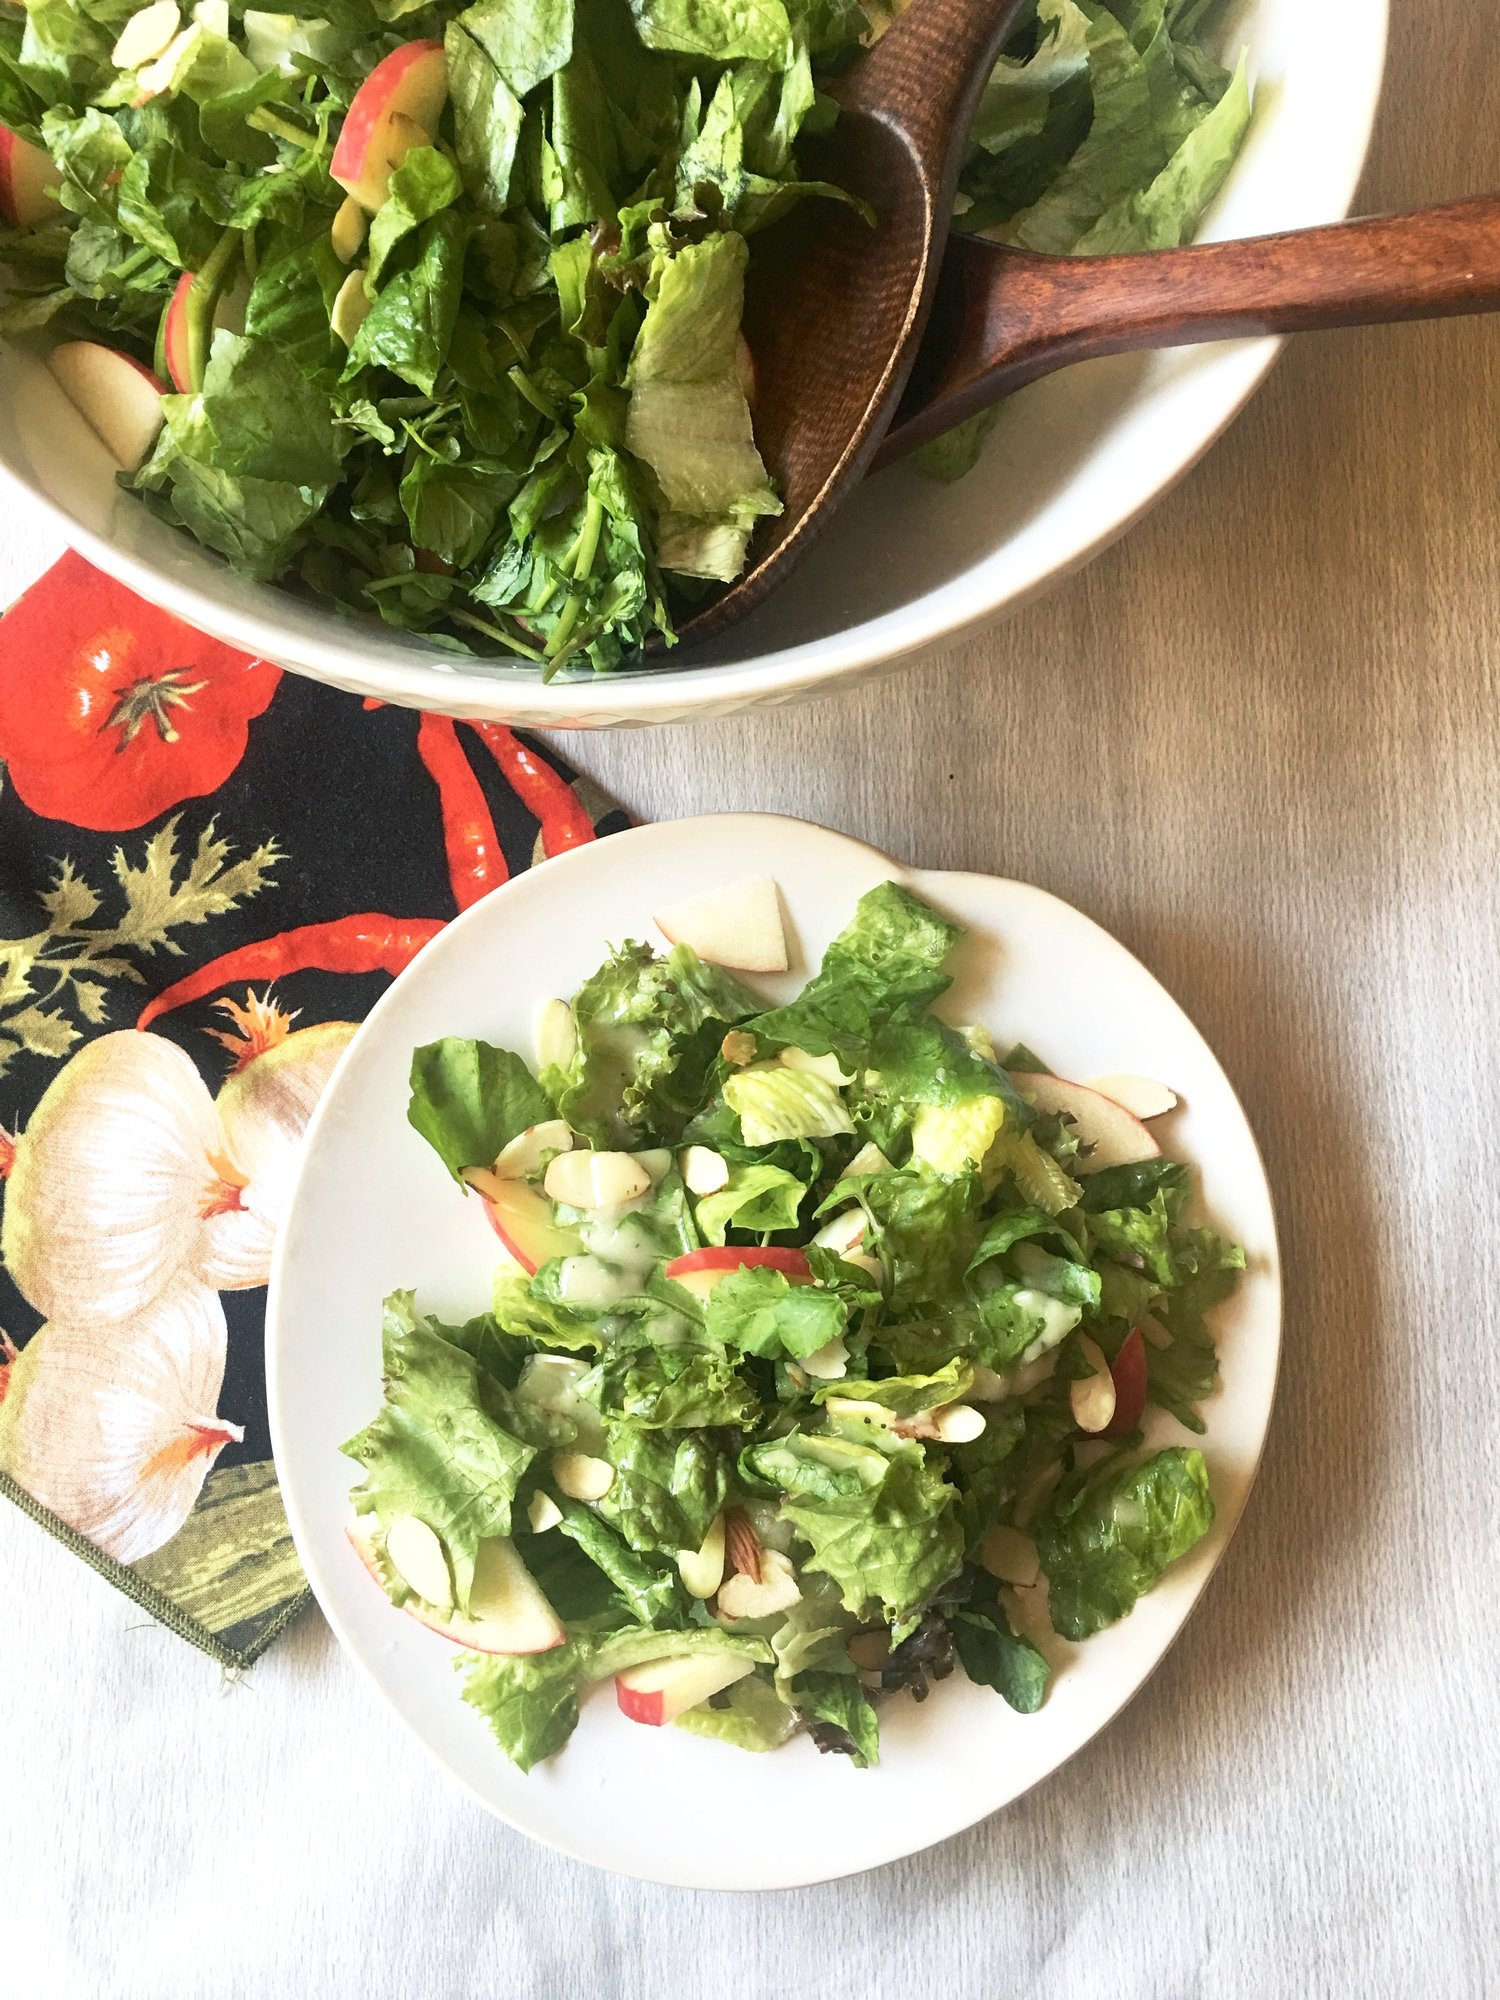 Mixed Greens with Apple, and Cider Vinaigrette